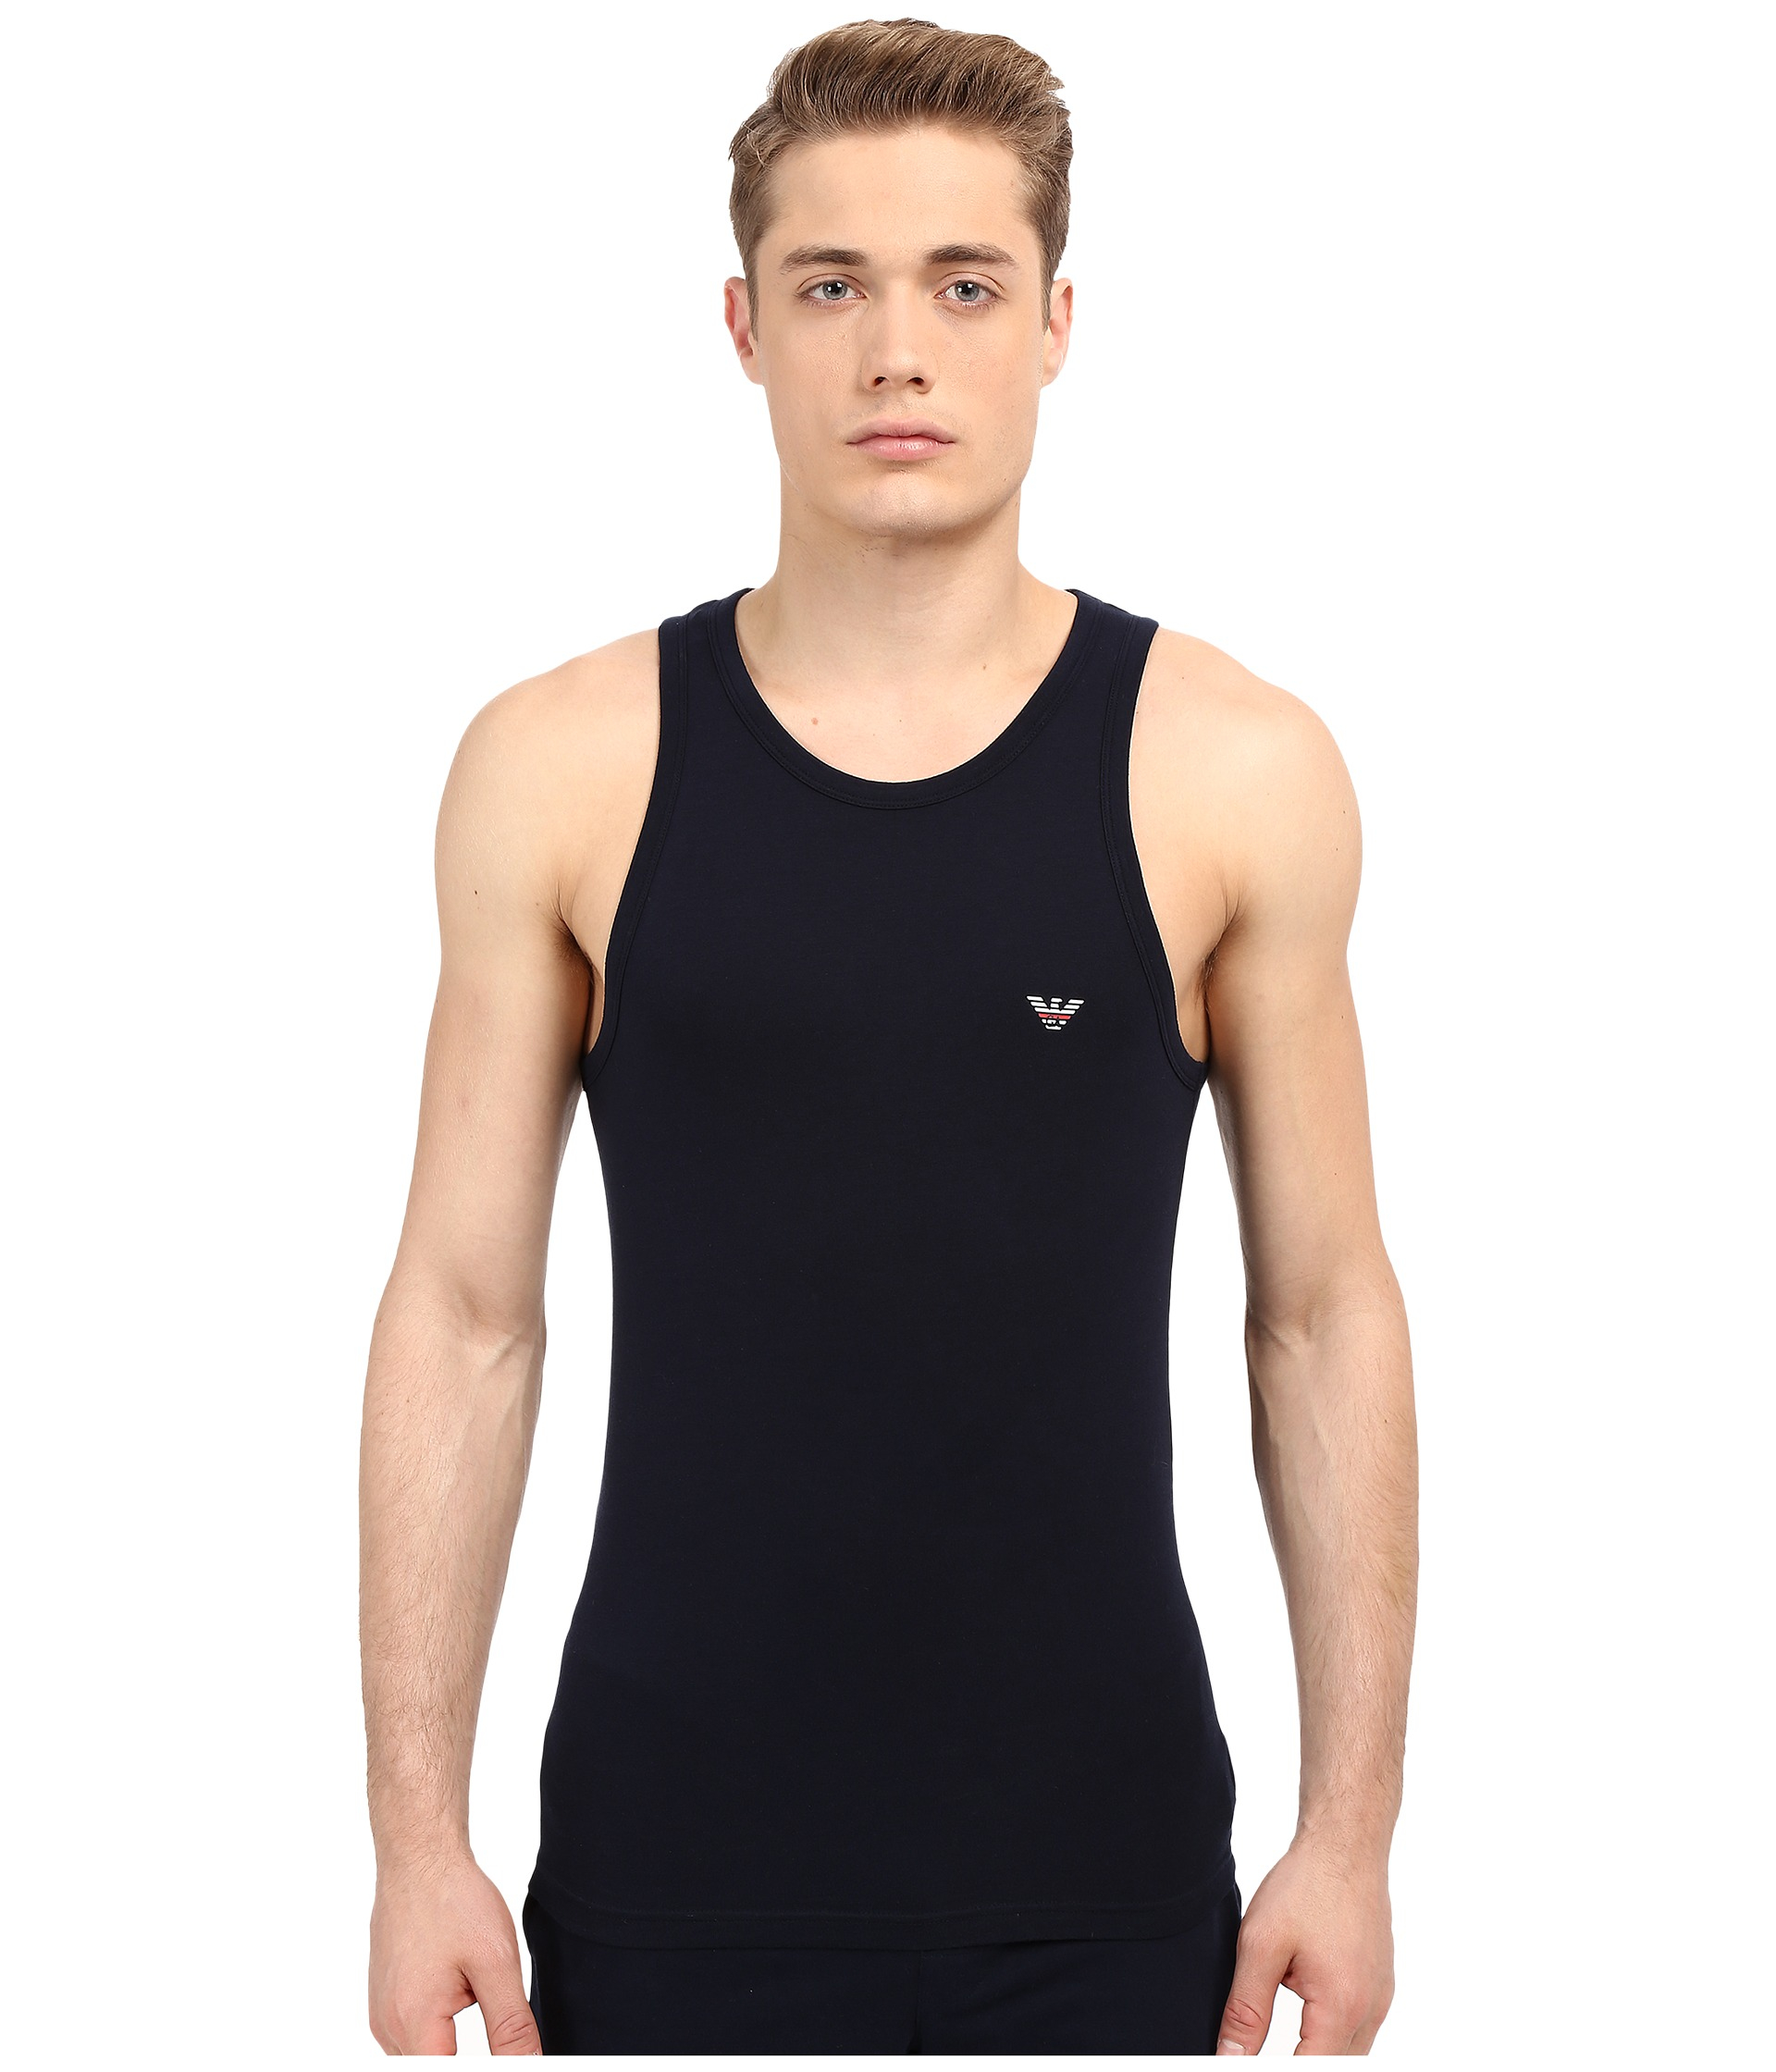 bb9ef4104484d Lyst - Emporio Armani Back To The 90 s Tank Top in Black for Men